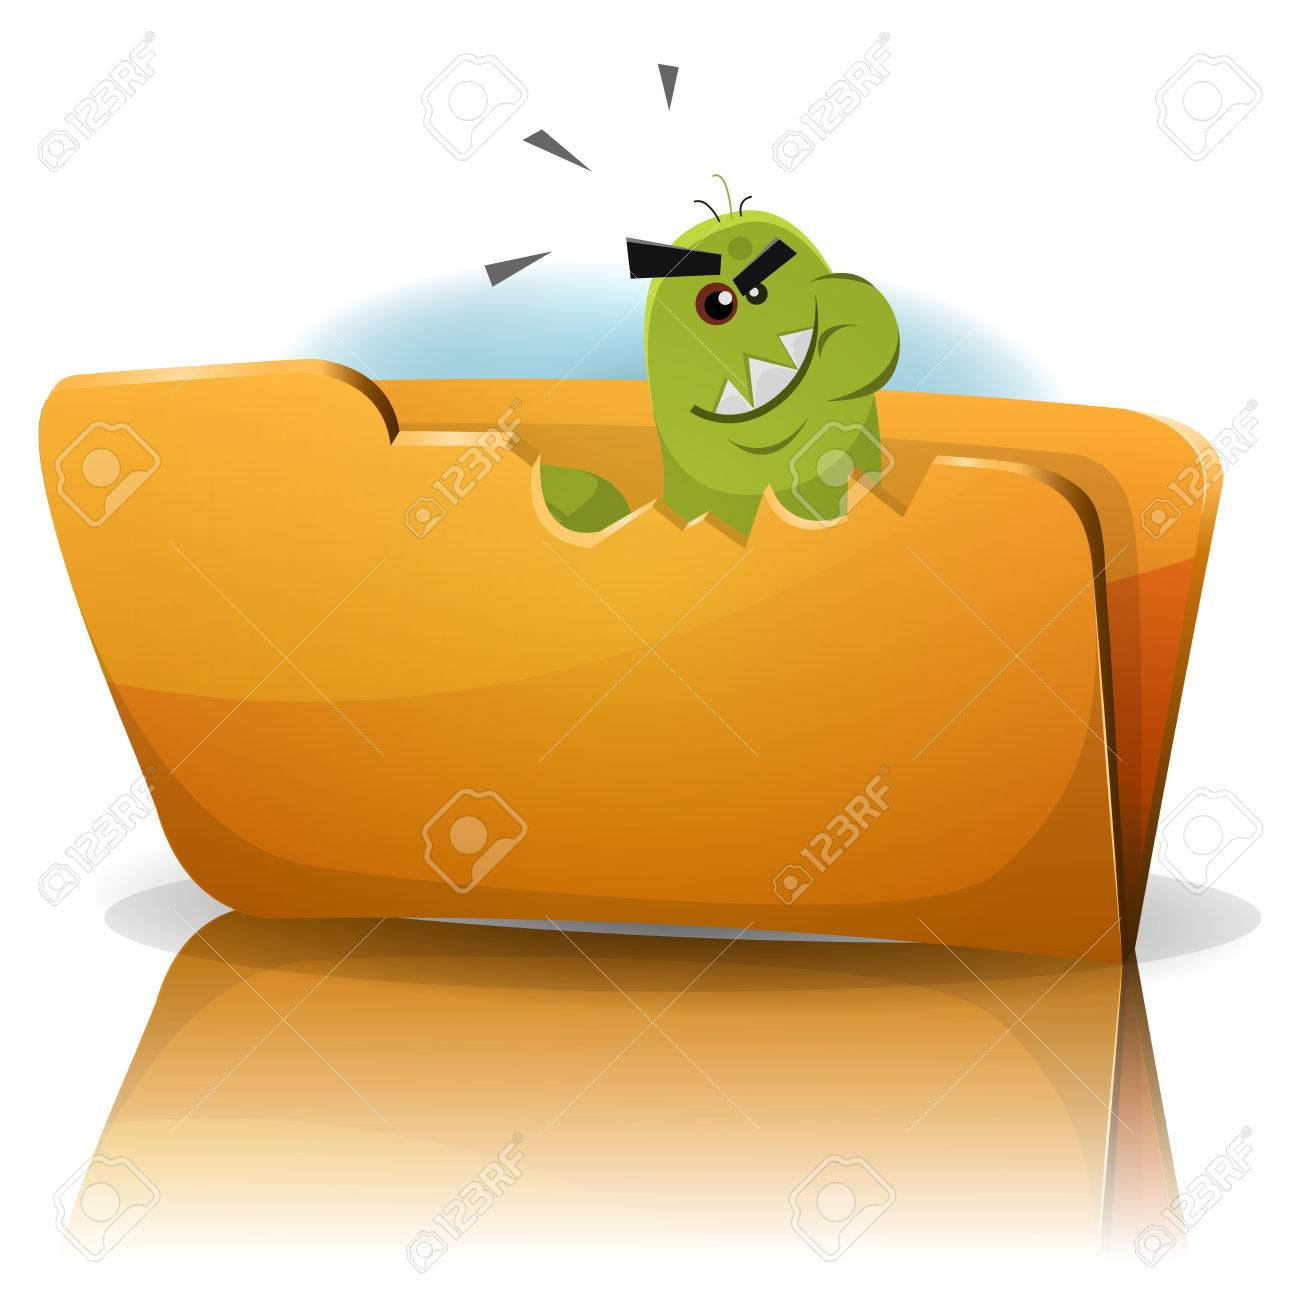 Illustration of a funny cartoon worm trojan virus icon character eating data folder, symbolizing spyware, malware and computer infection Stock Vector - 24441492